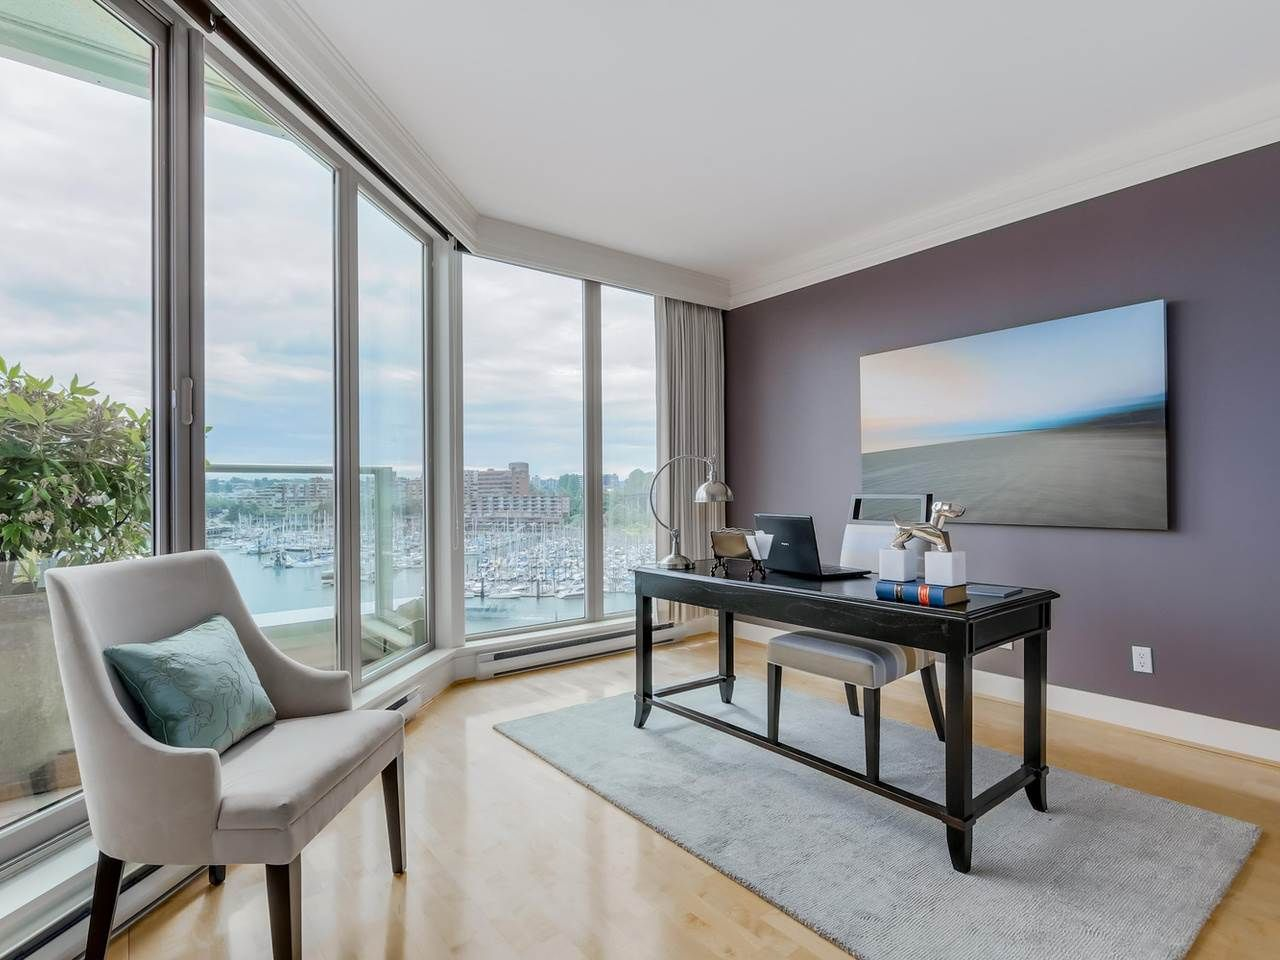 """Photo 6: Photos: 800 1675 HORNBY Street in Vancouver: Yaletown Condo for sale in """"SEAWALK SOUTH"""" (Vancouver West)  : MLS®# R2083569"""